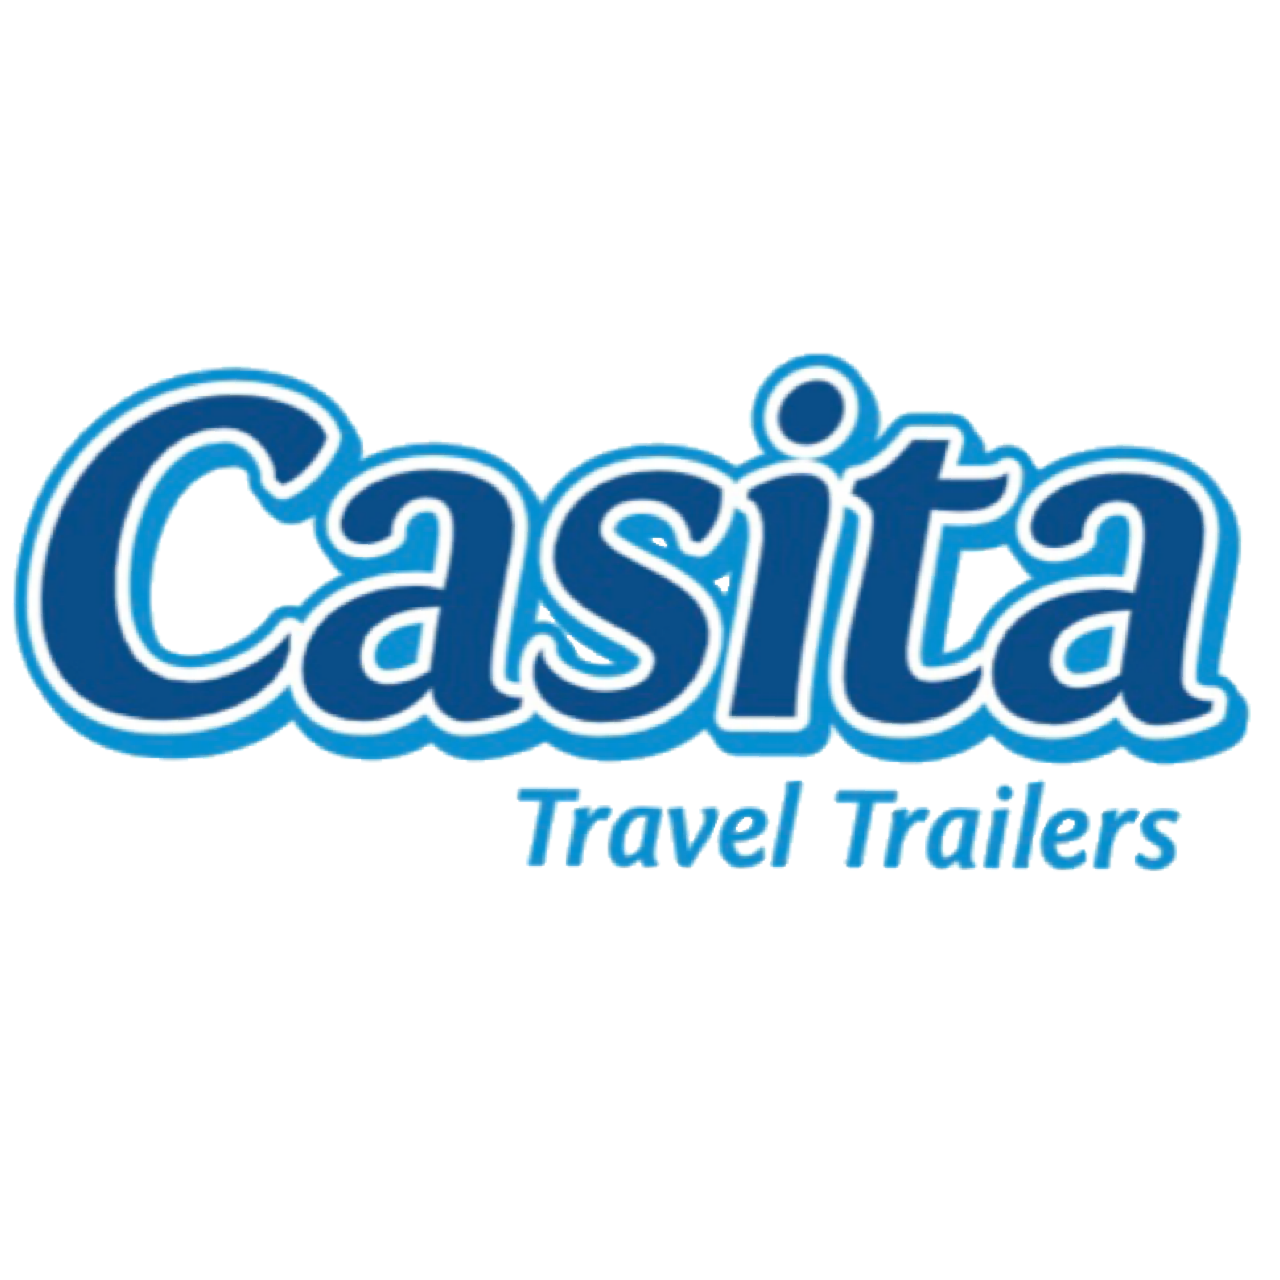 Casita Travel Trailers is a family owned business since 1983, we make fiberglass travel trailers in several sizes and variations.